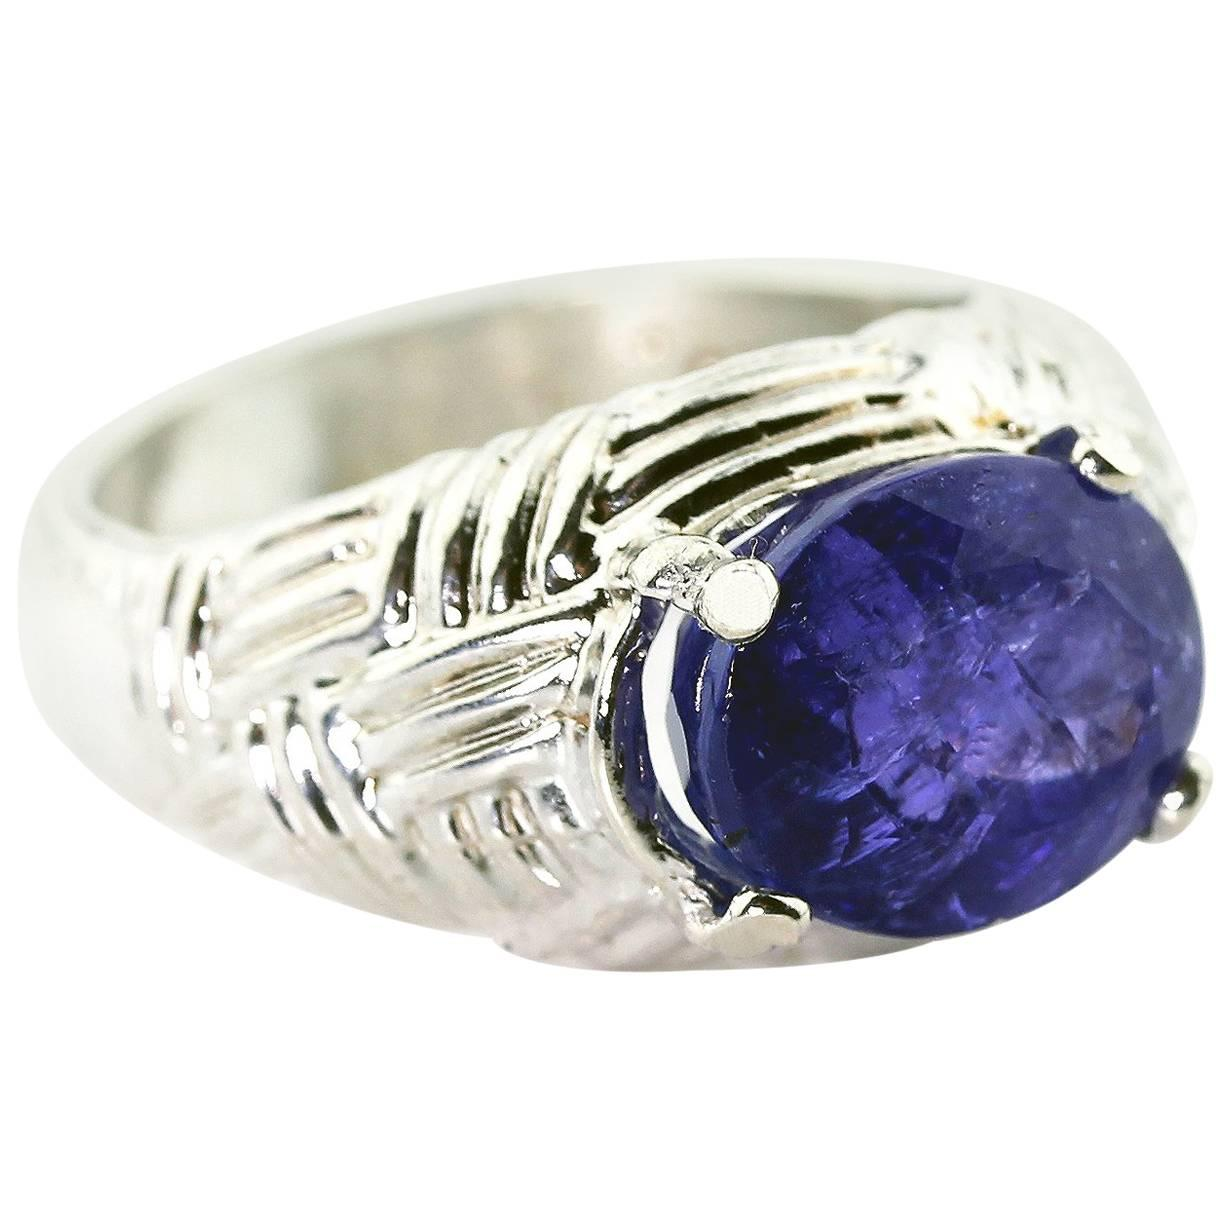 Gemjunky Bright Sparkly 5.68 Ct Sparkling Purply-Blue Tanzanite Cocktail Ring